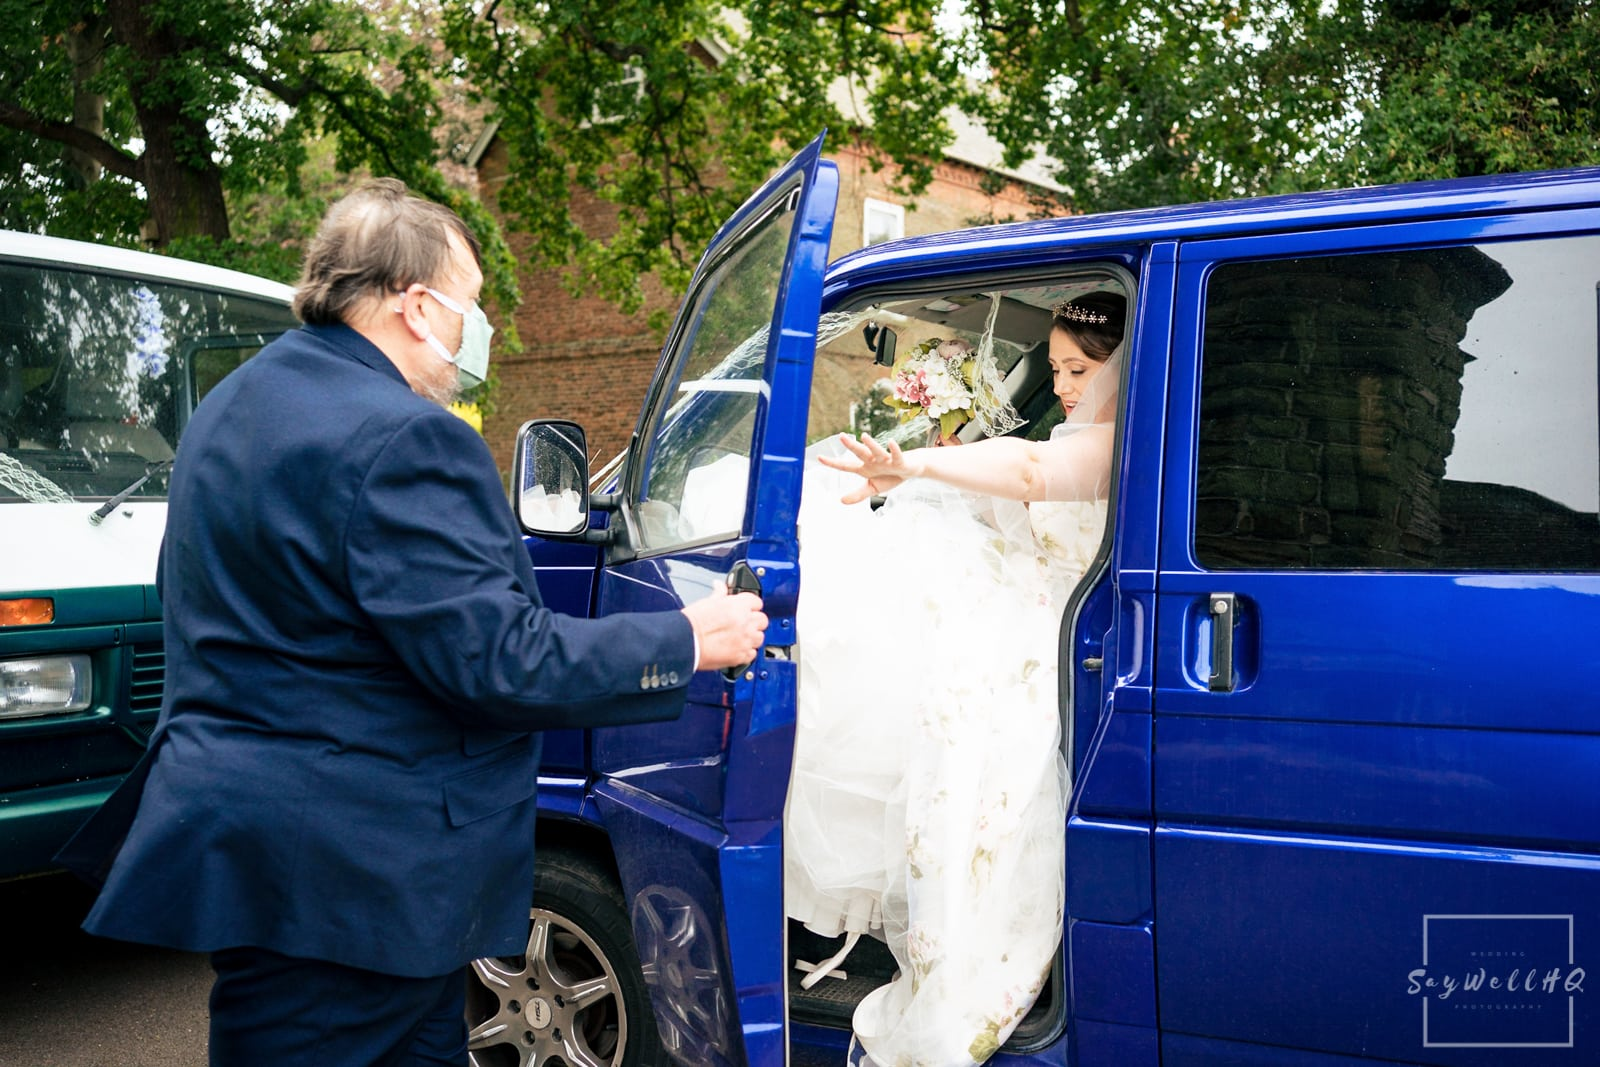 Lincoln Wedding Photography + Spilsby Church Wedding Photographer + bride arrives in her VW campervan ready for here Church Wedding ceremony